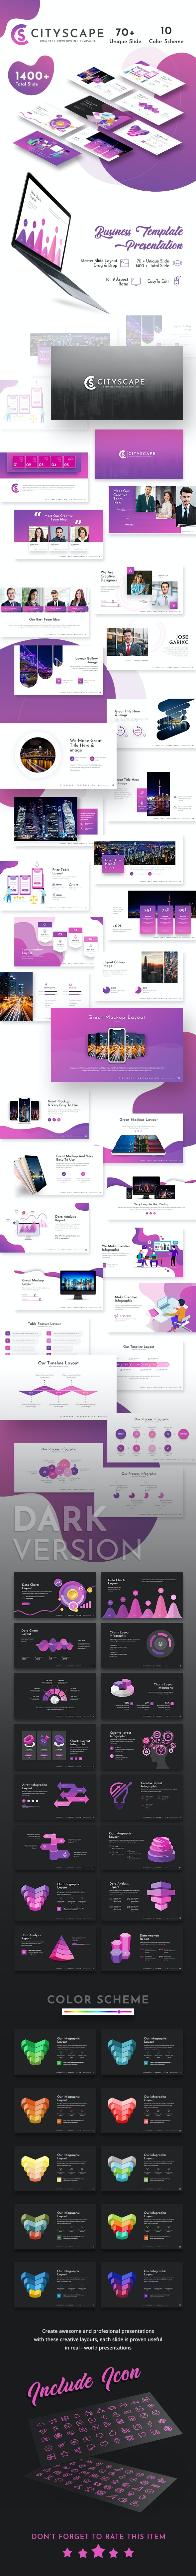 Cityscape Presentation Template - Business PowerPoint Templates